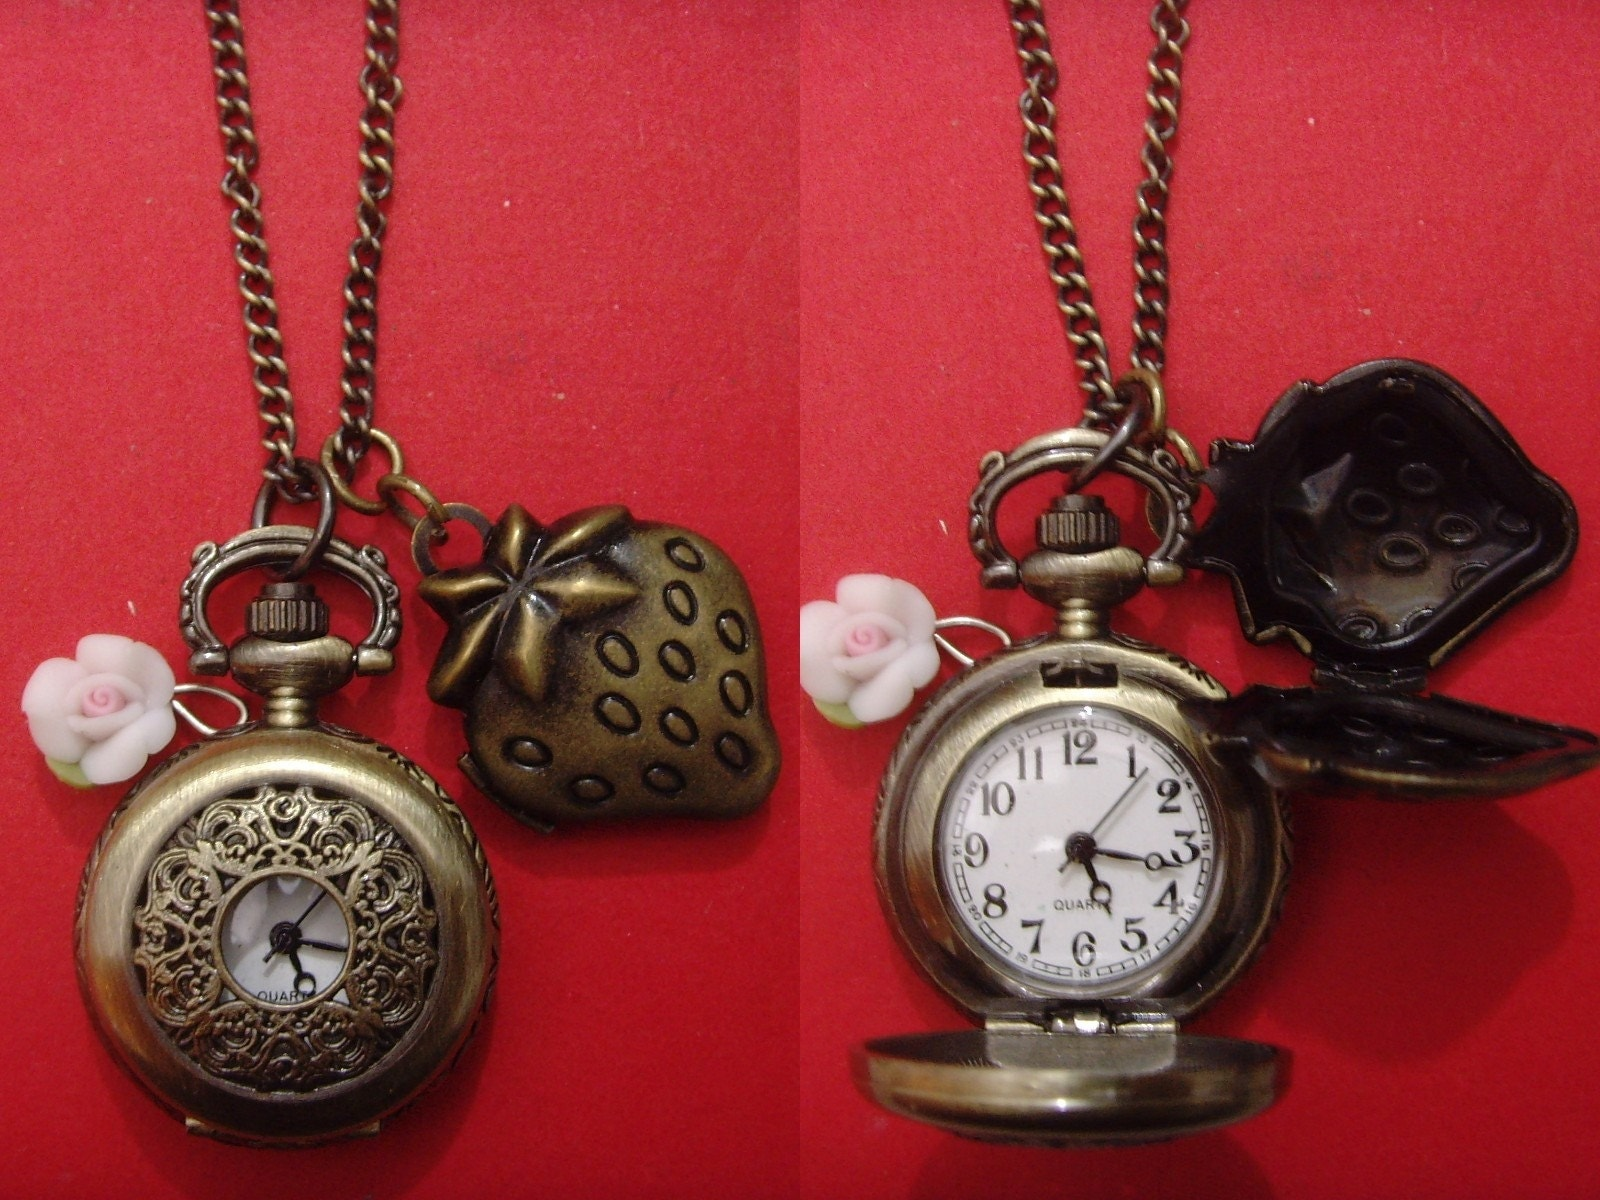 Sale timepiece lovely strawberry locket bronze filigree little lace cover pocket watch 24 inches chain necklace